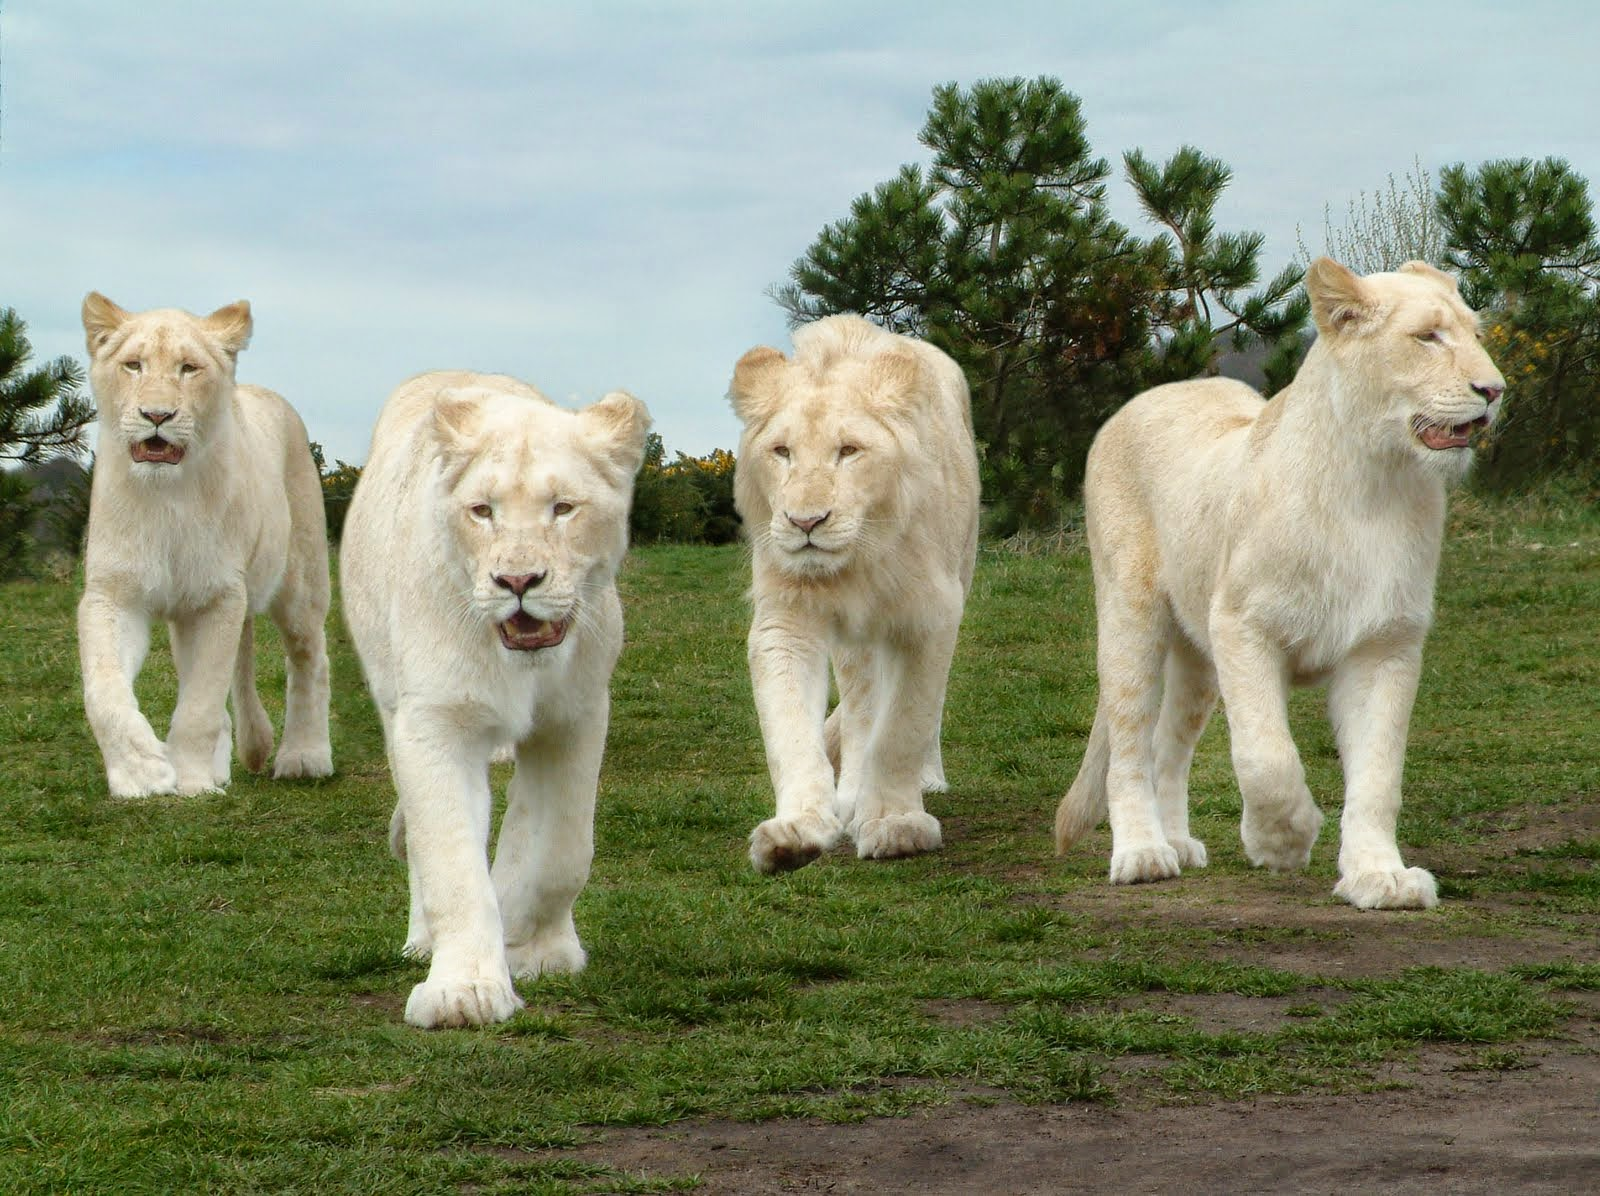 Amazing White Lions Wallpapers